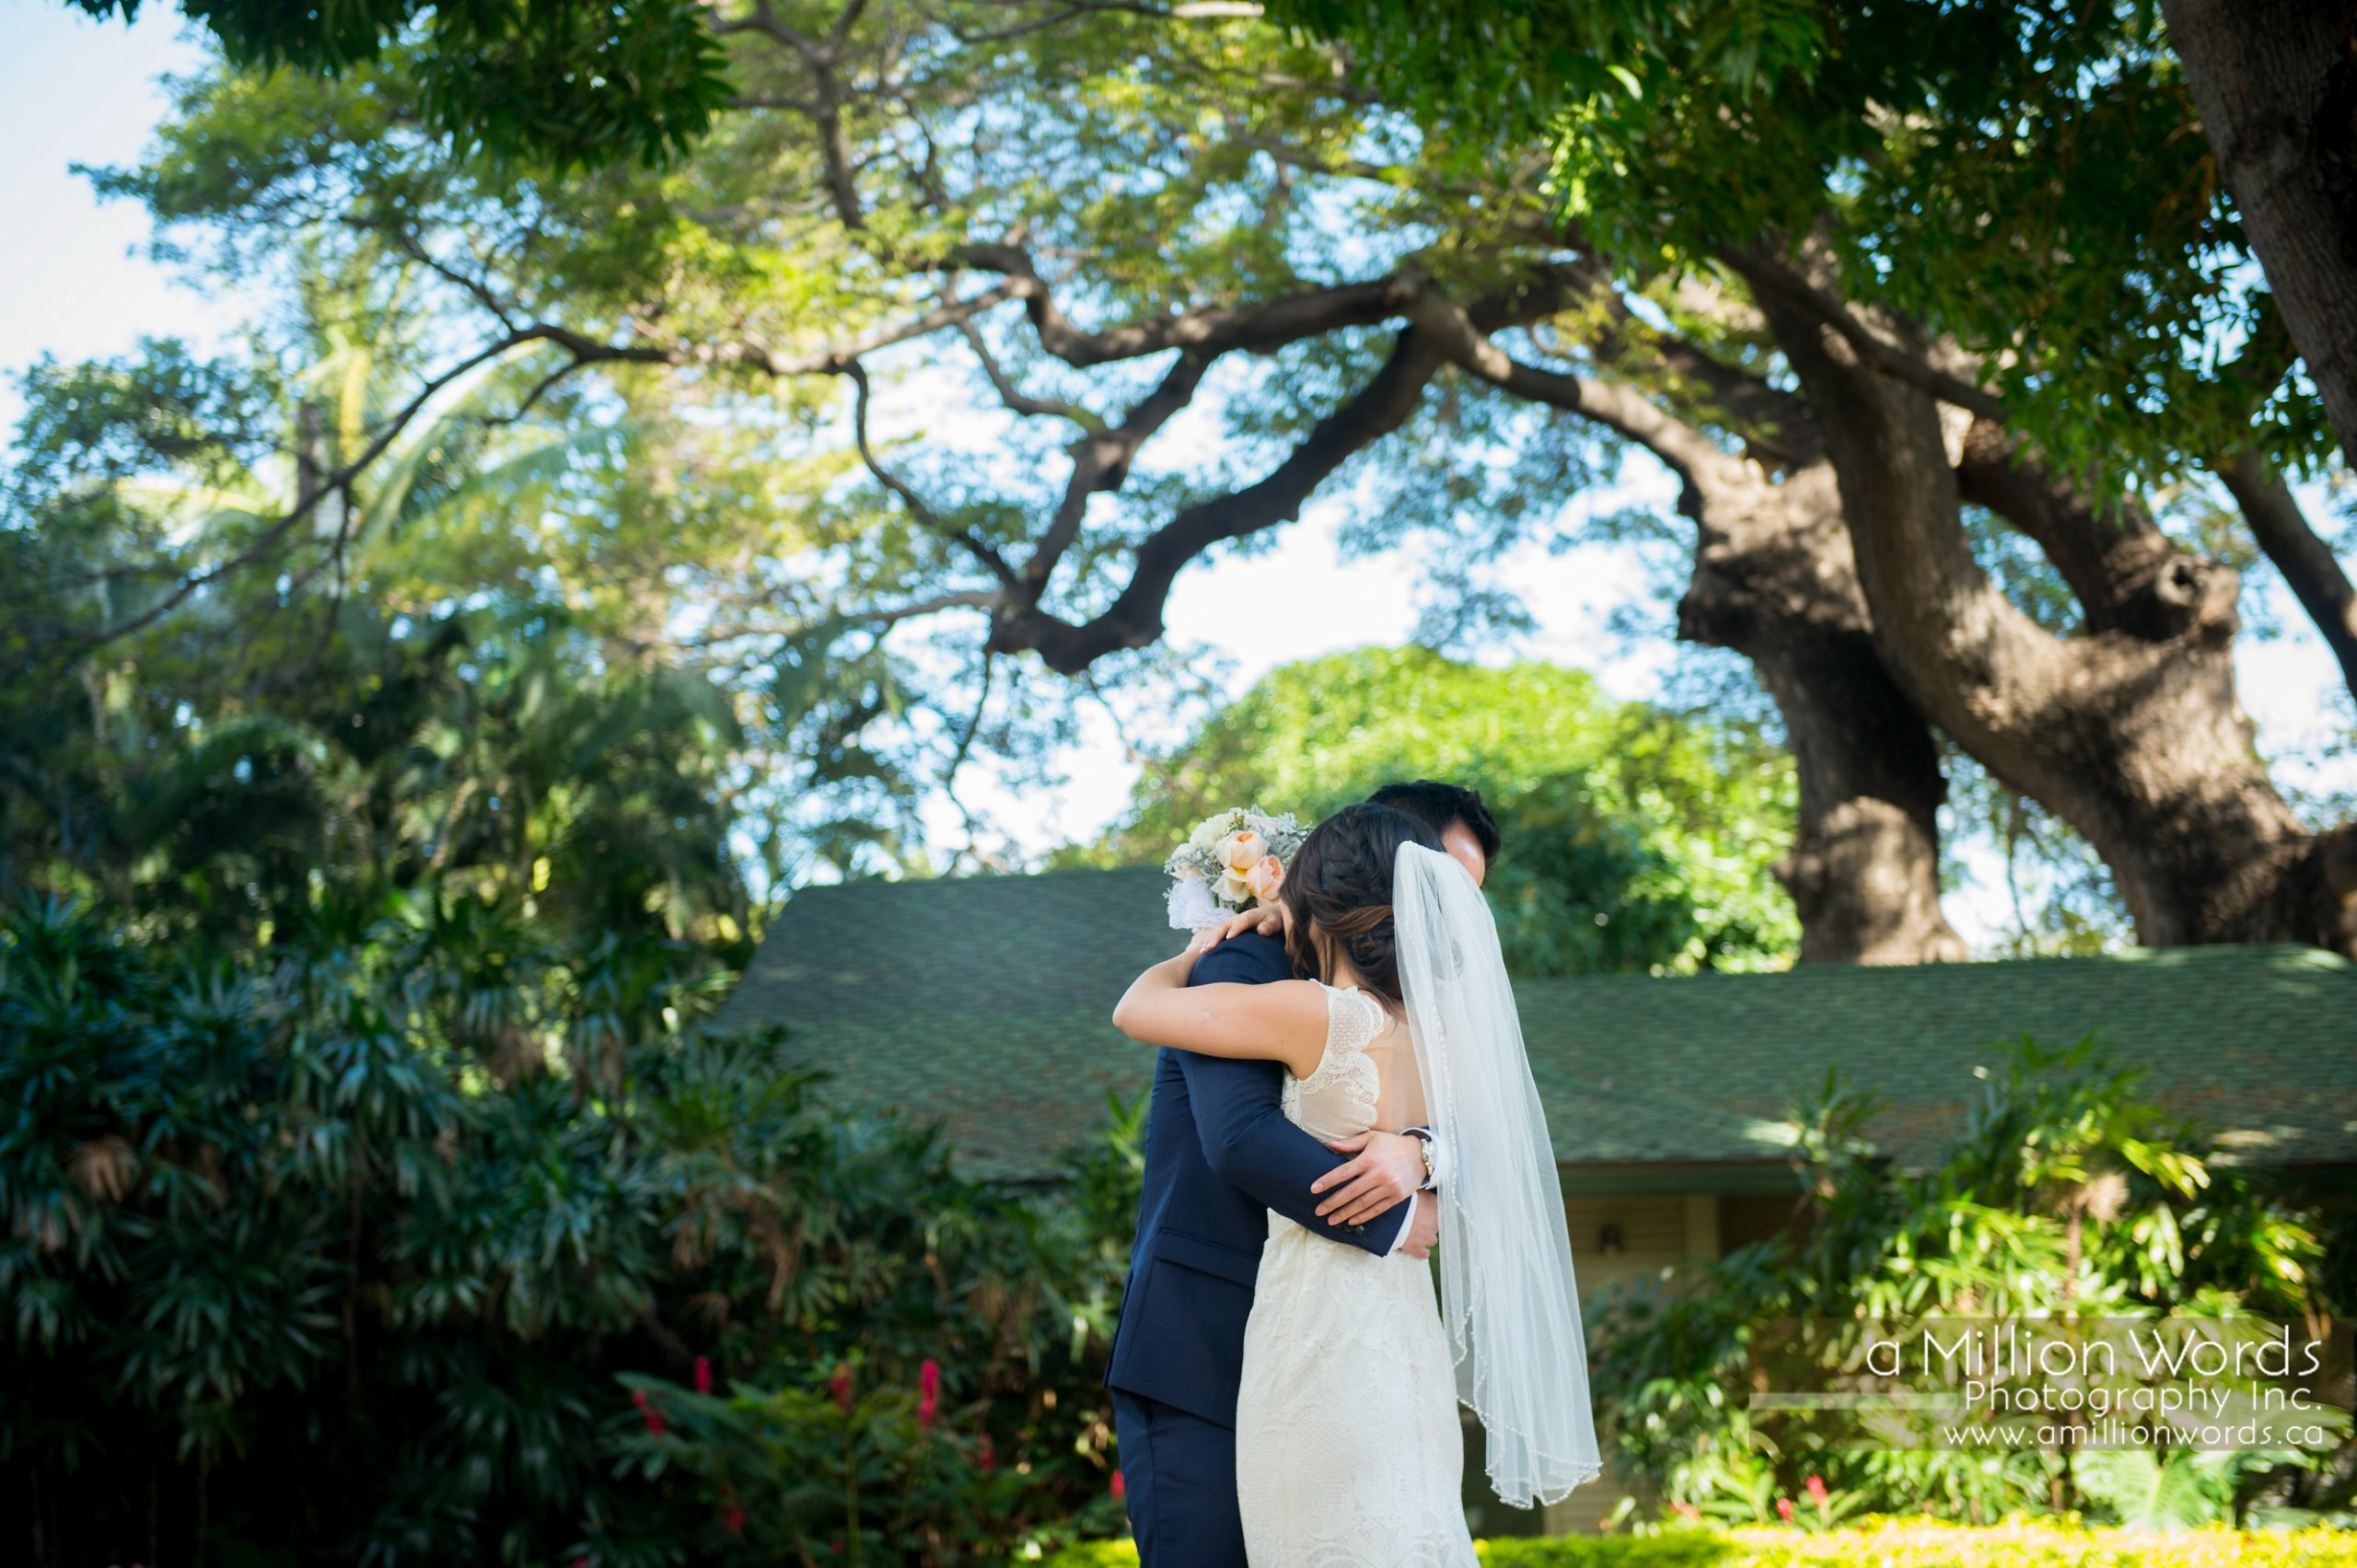 kw_destination_wedding_photography19